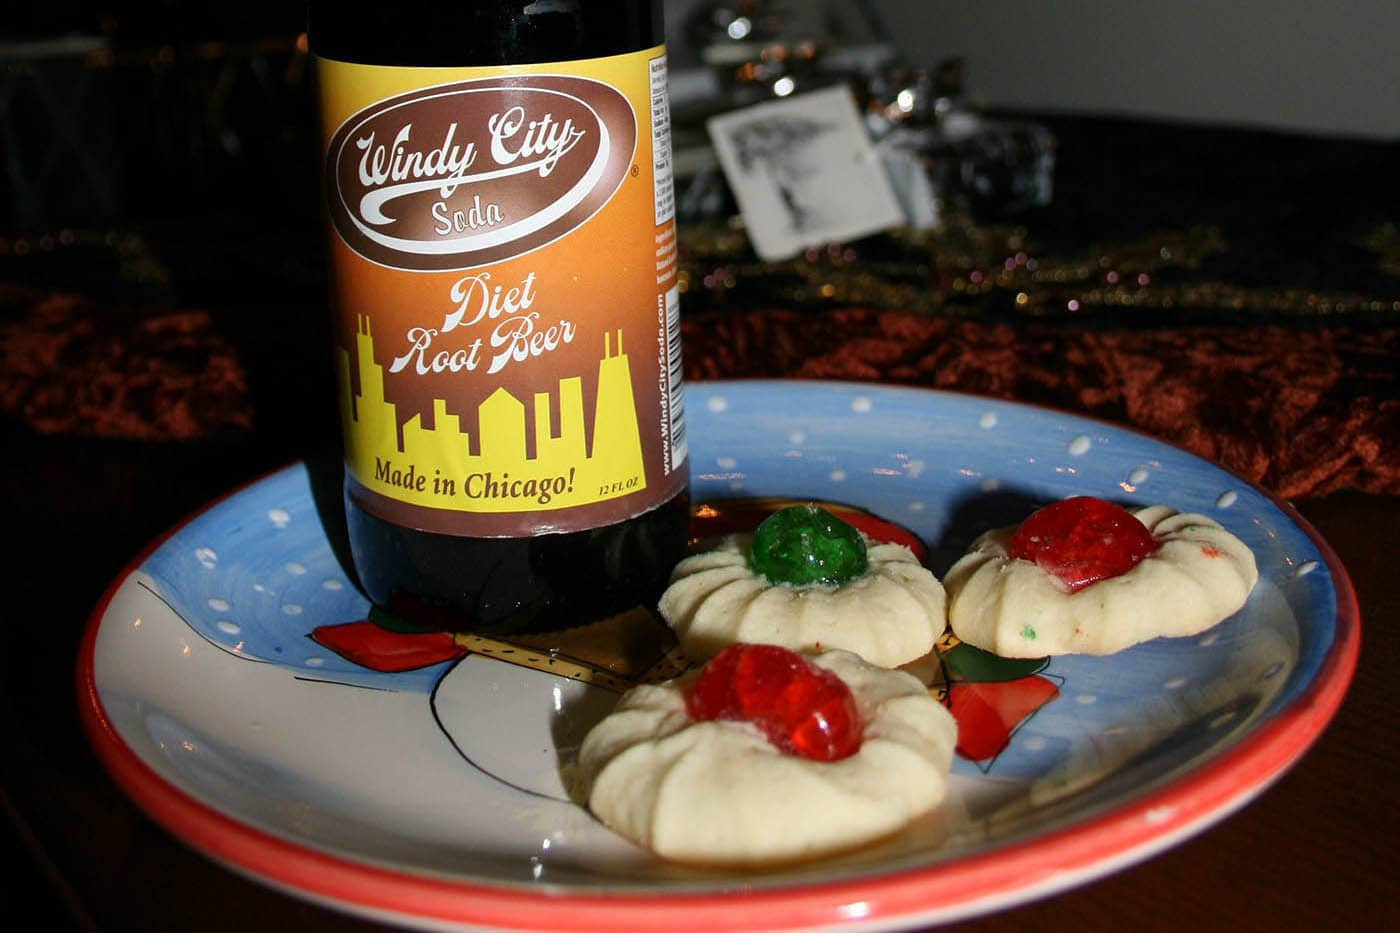 Leaving out diet root beer and cookies for Santa..